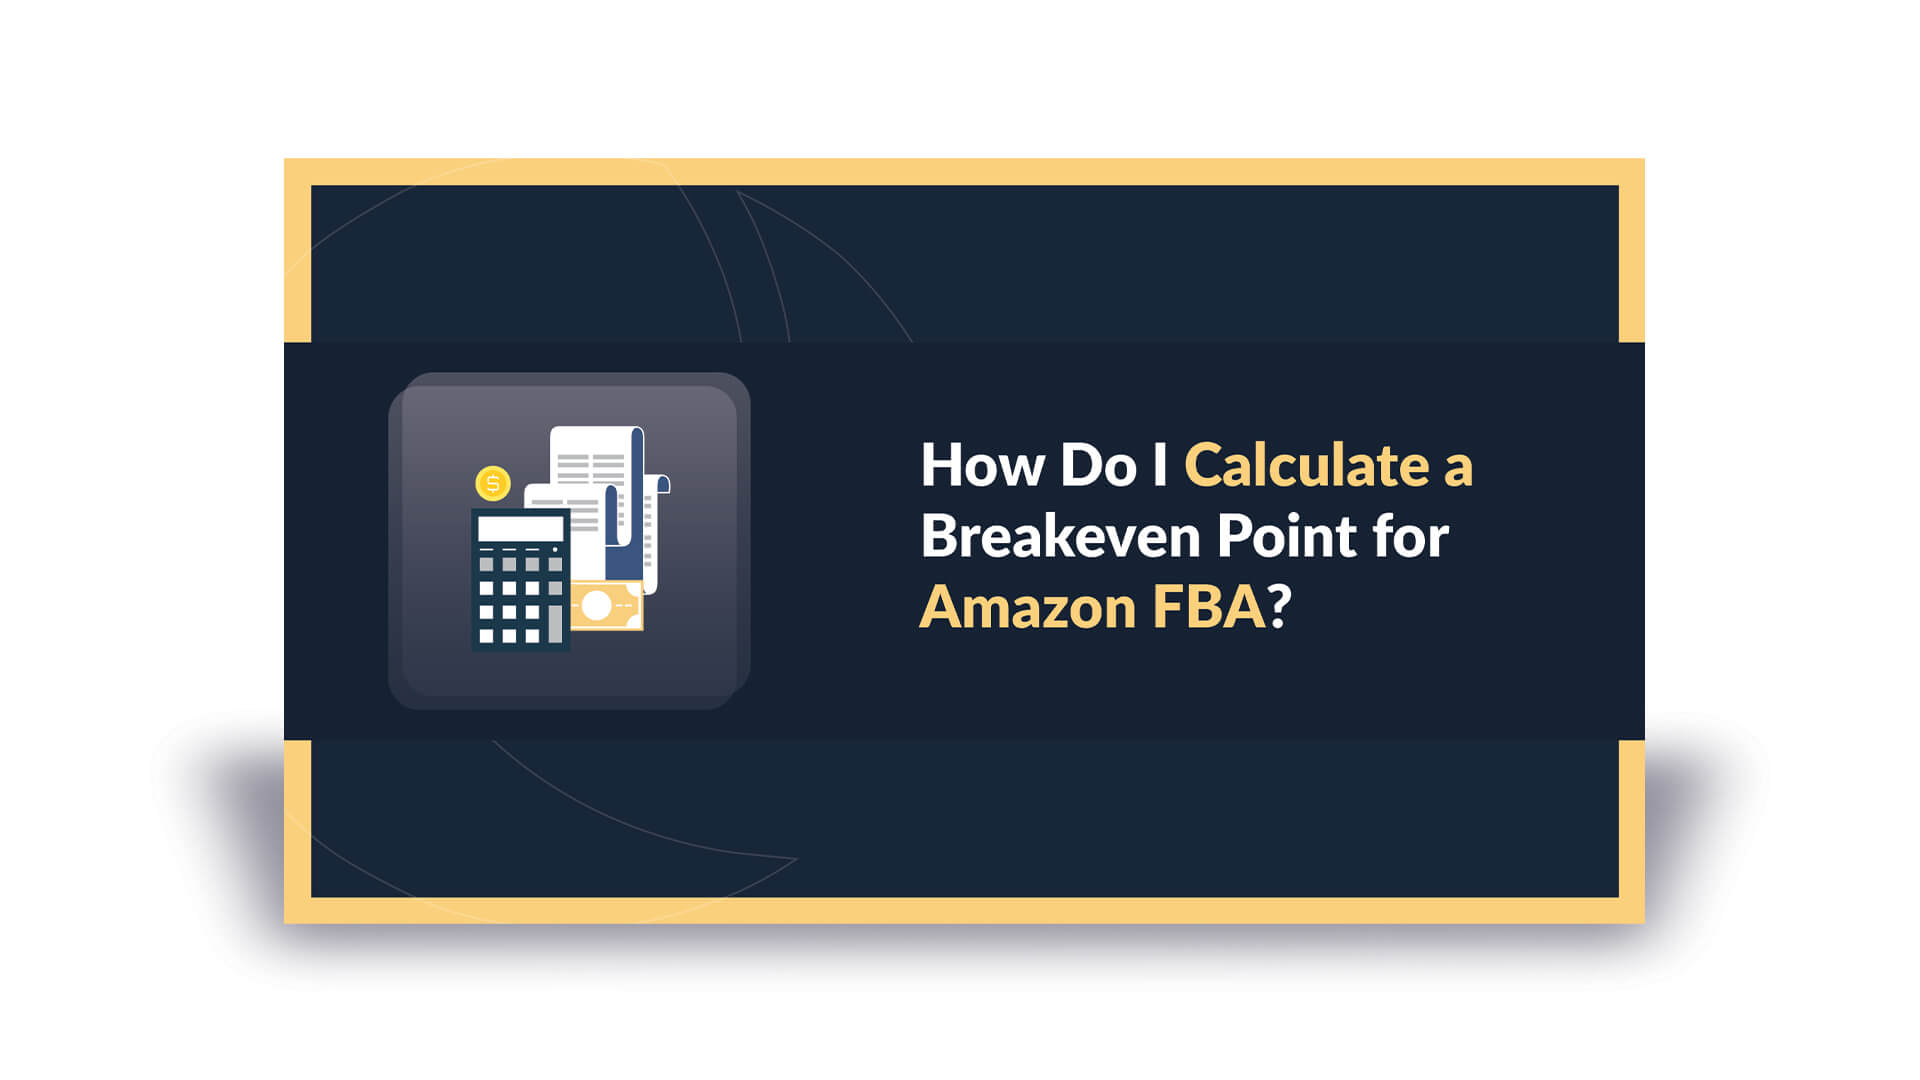 How Do I Calculate a Breakeven Point for Amazon FBA?